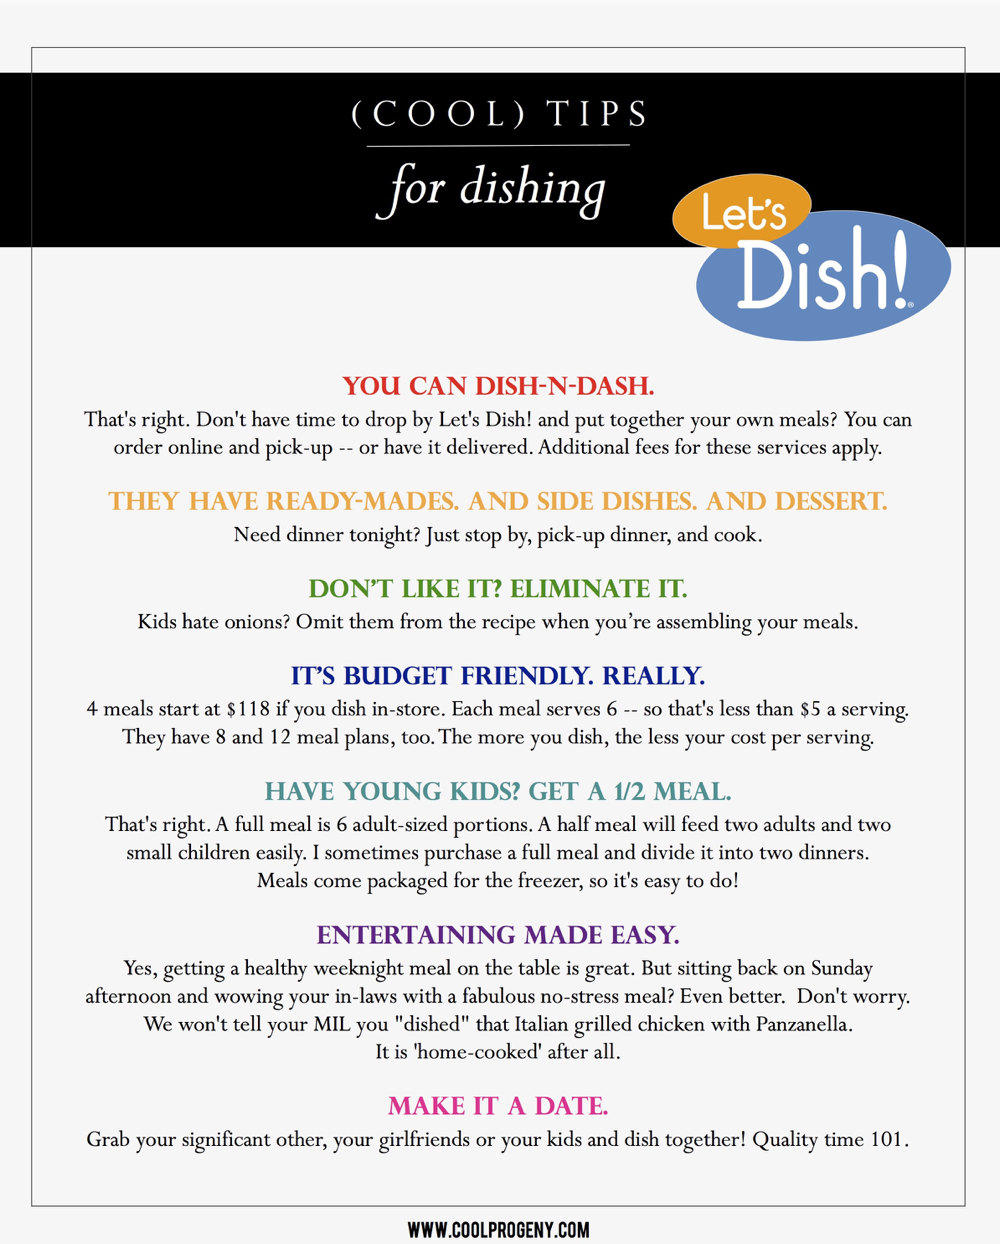 (cool) tips: dishing with let's dish! - (cool) progeny